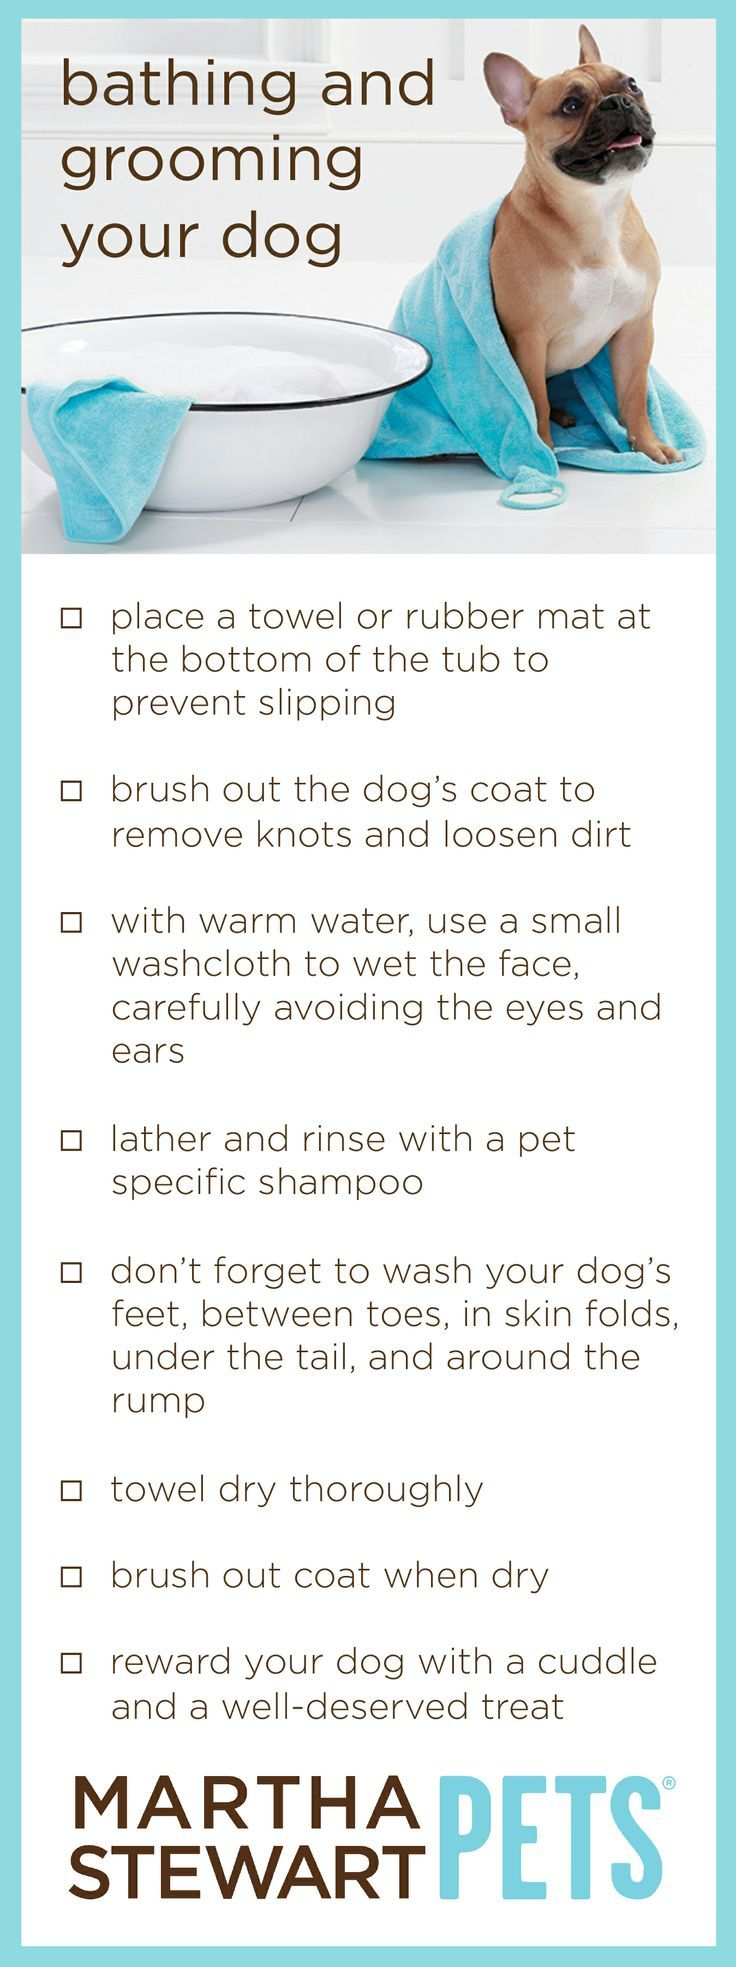 Martha Stewart Pets tips on bathing and grooming your dog Check out our selection of grooming tools available at Pet Smart pet care